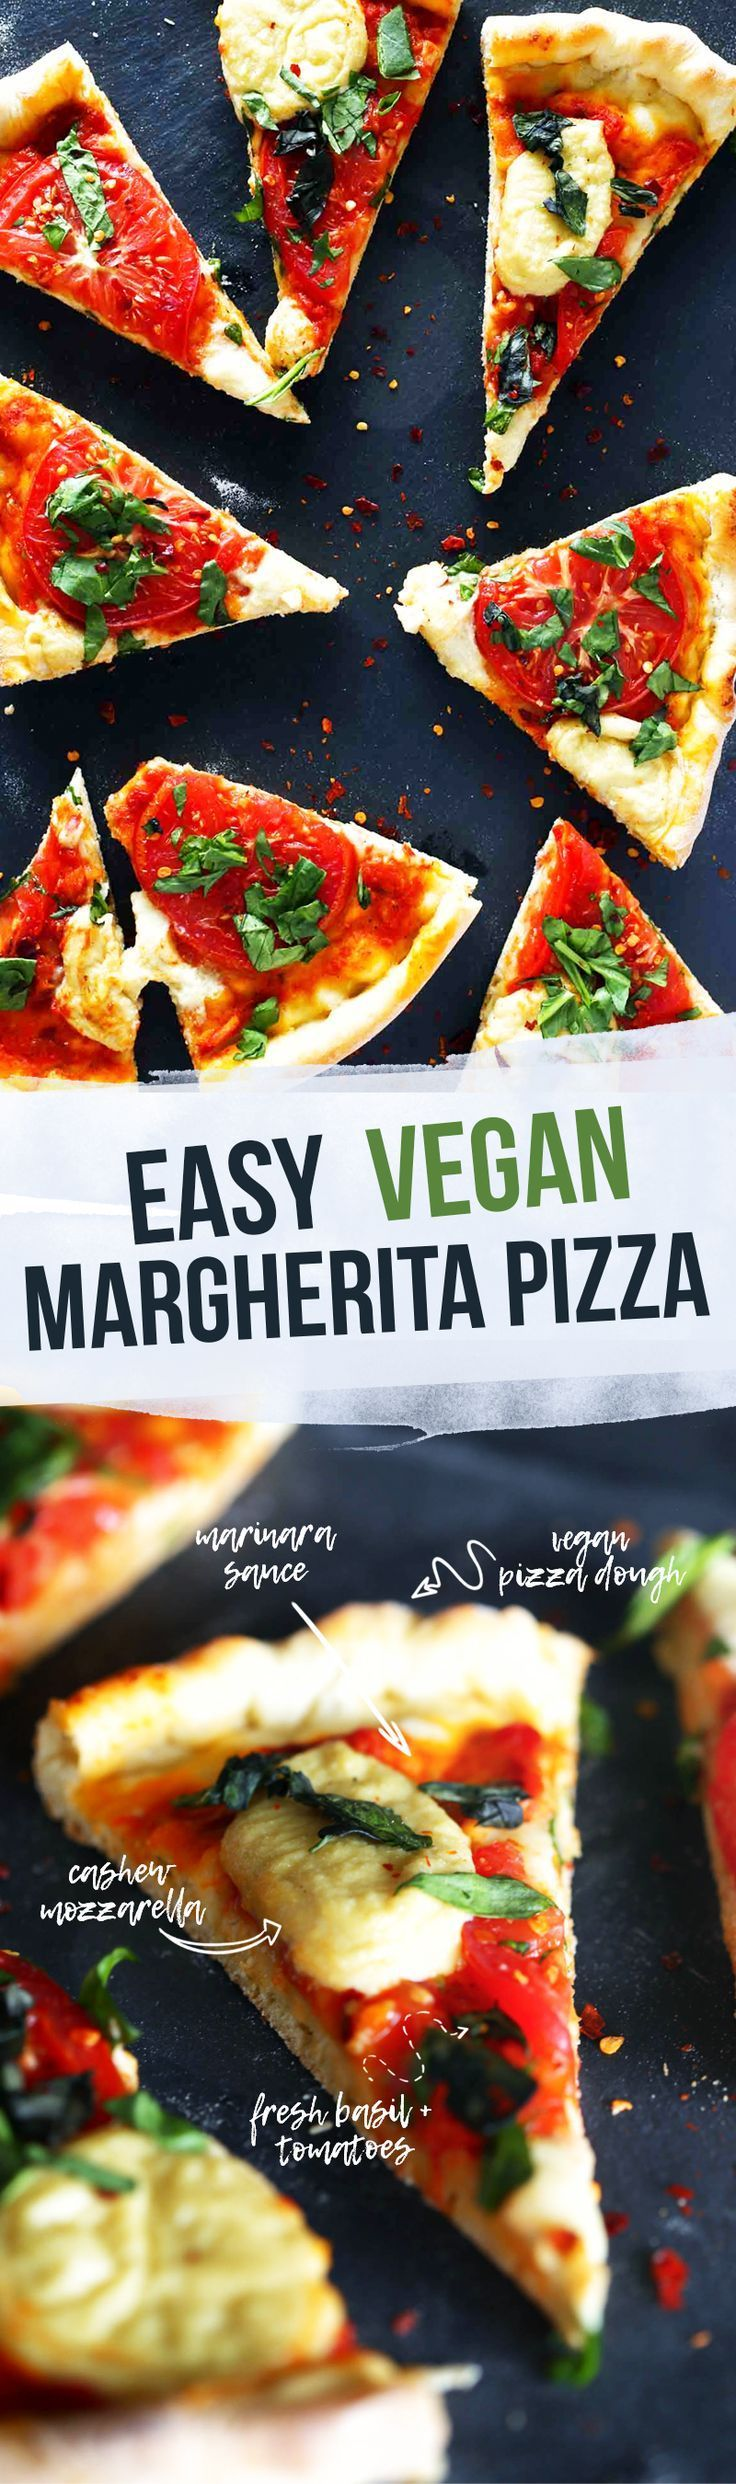 Healthy Vegan Pizza with Cashew Mozzarella - Delicious vegan pizza - margherita style. Made with homemade cashew mozzarella, marinara sauce, and vegan dough. Topped with fresh tomatoes and fresh basil.